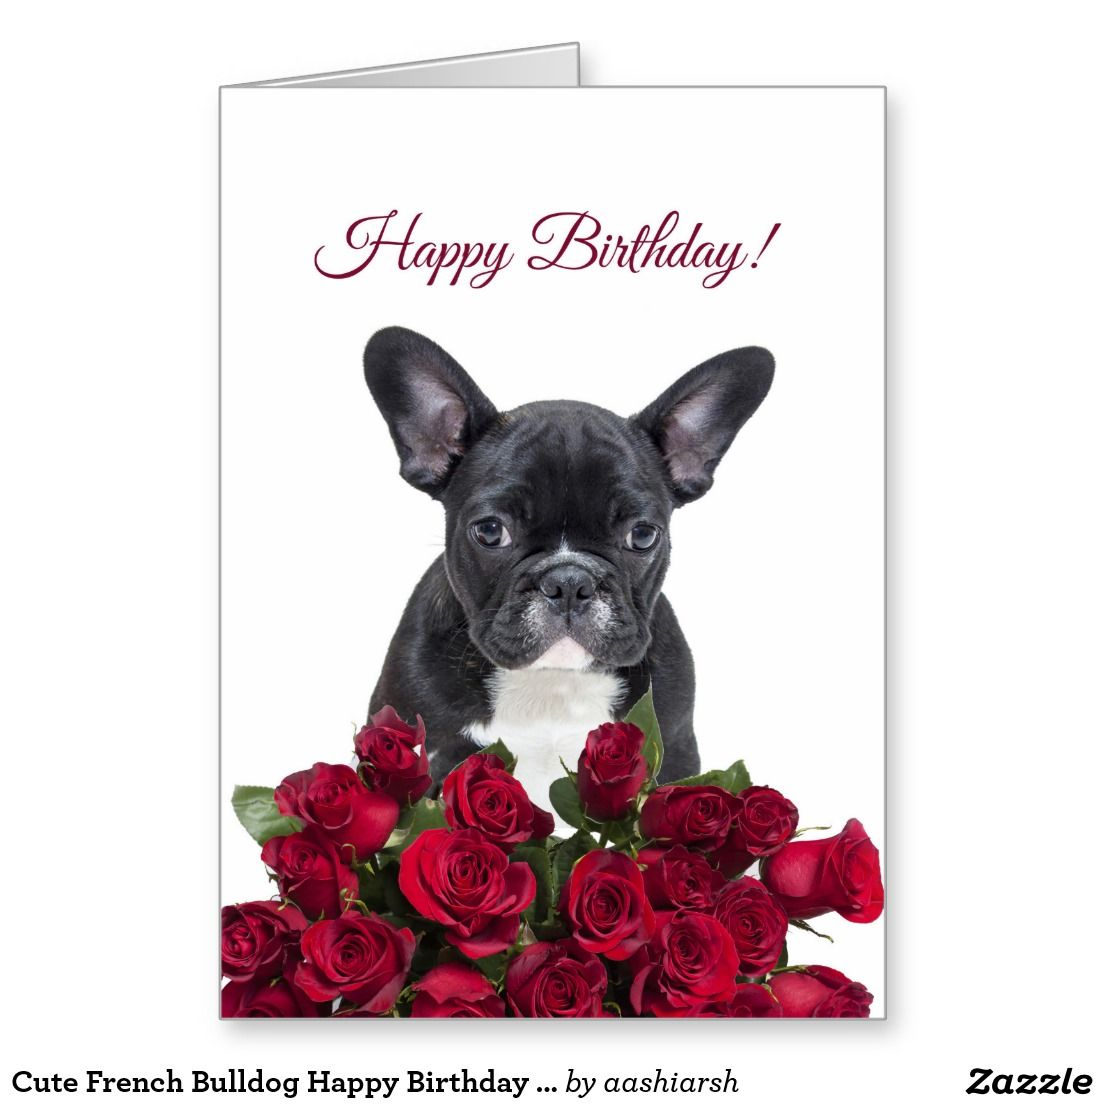 Pet Store Cockburn Cute French Bulldog Happy Birthday Red Roses Card Zazzle